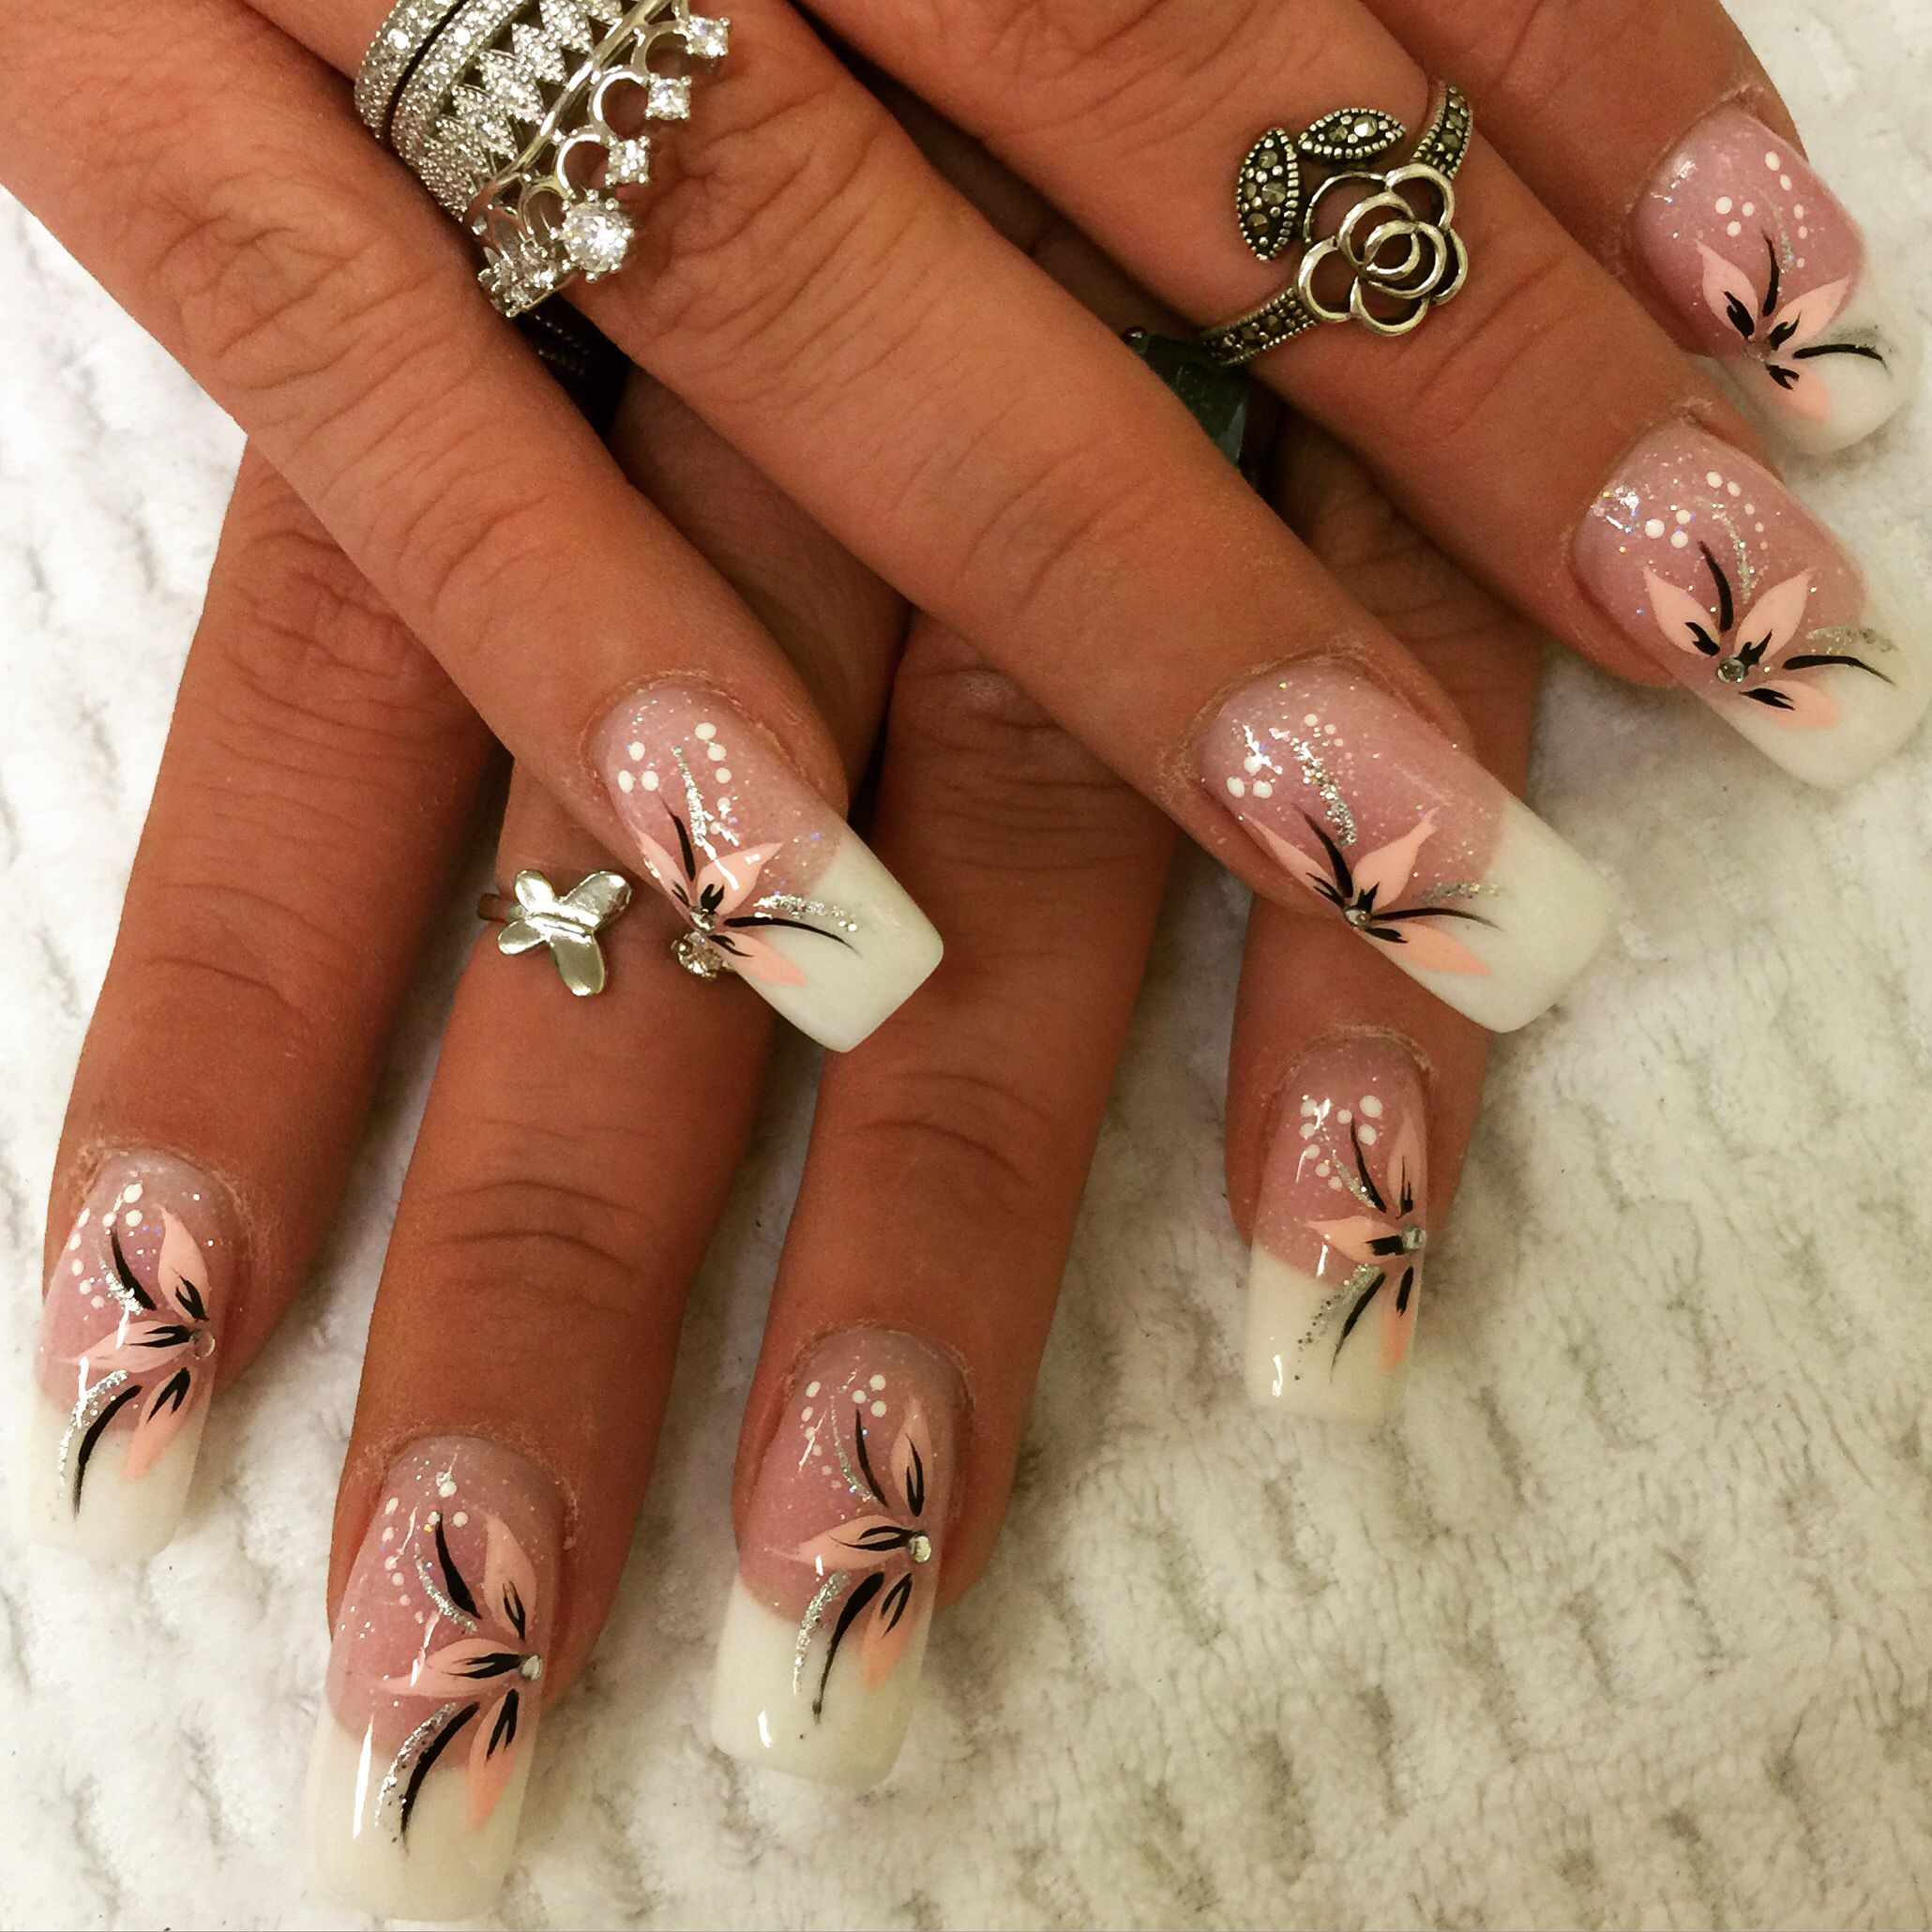 Pink And White Nail Designs Nail Art Flowers Pink Black Follow My Girl On Instagram At Thanhsnails White Nail Designs Pink Nail Designs Flower Nail Art